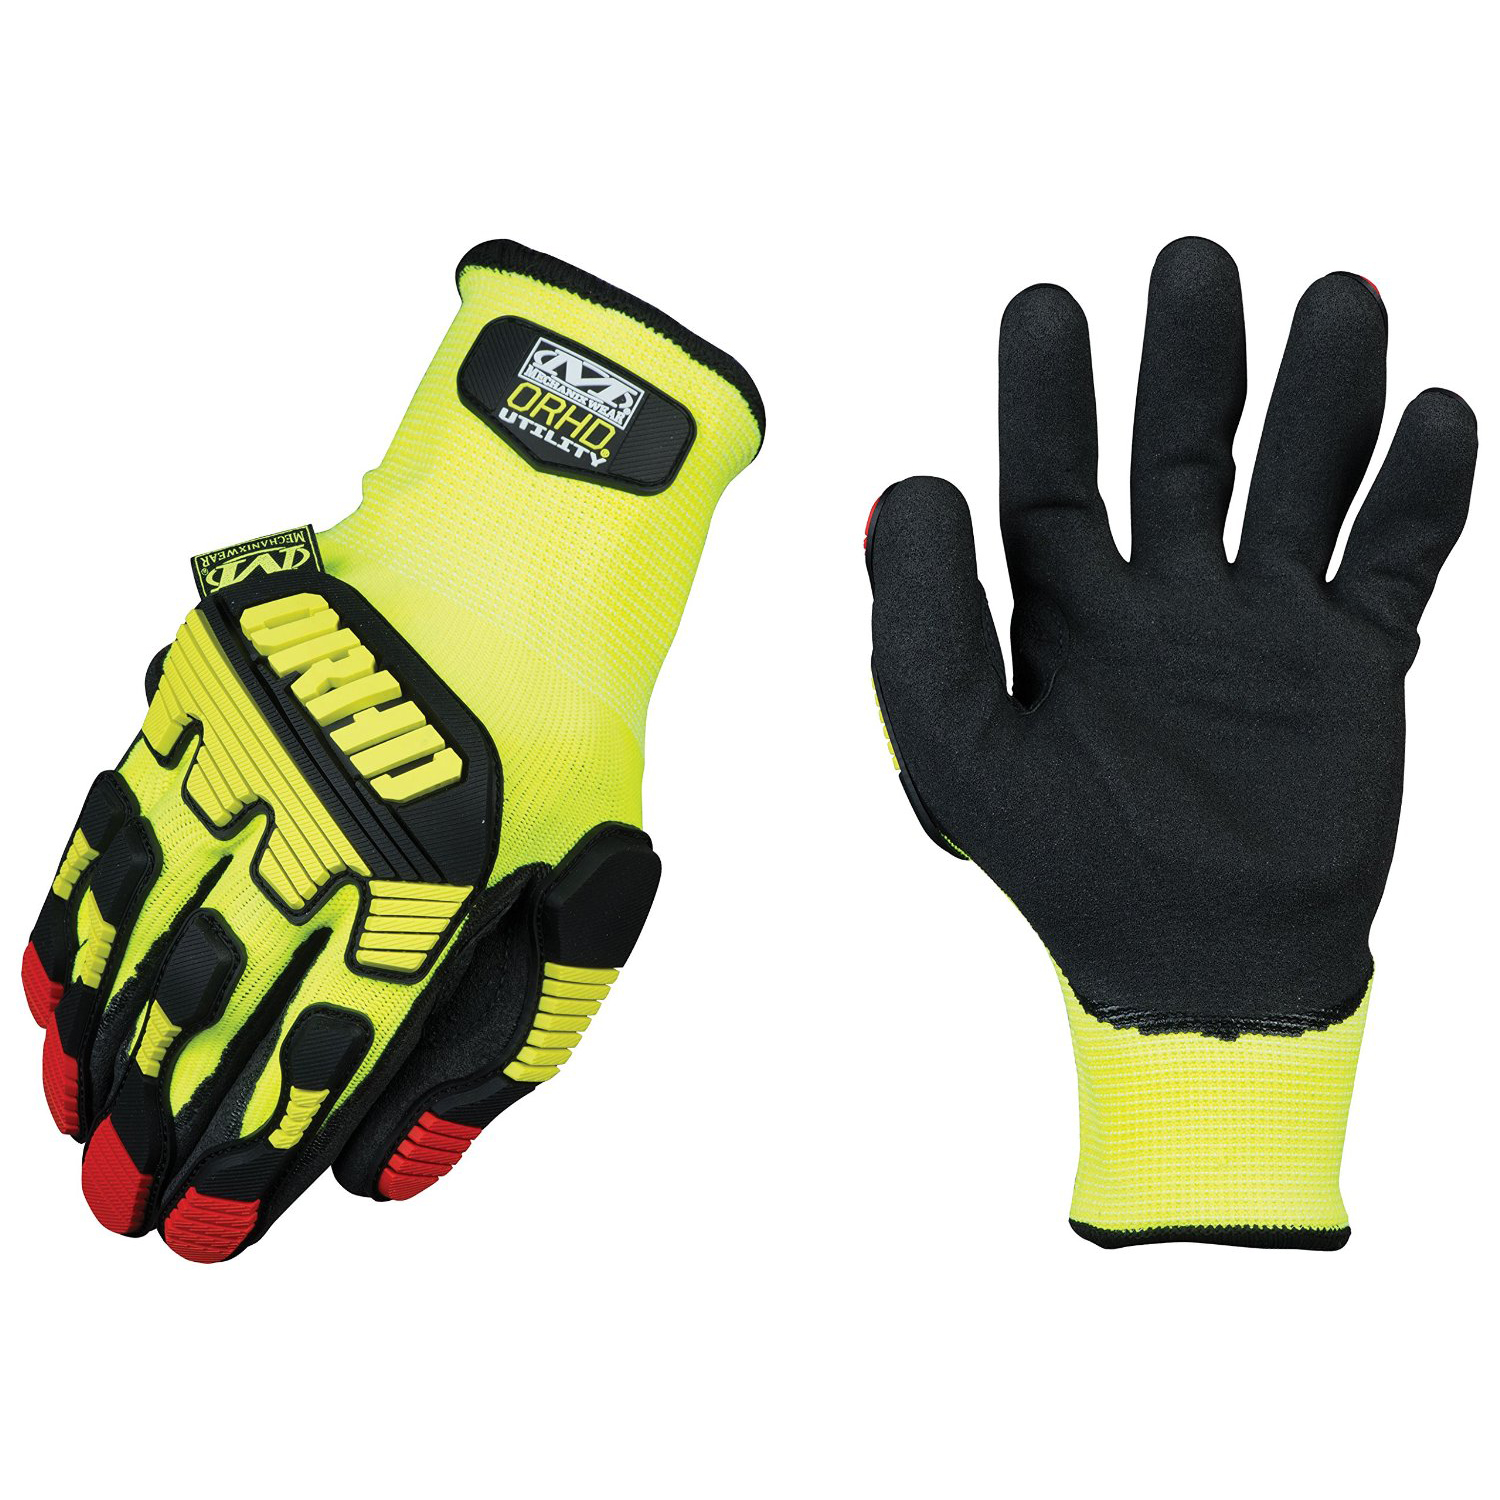 Leather work gloves ebay - Mechanix Wear Orhd Knit Impact Protection High Visibility Work Utility Gloves